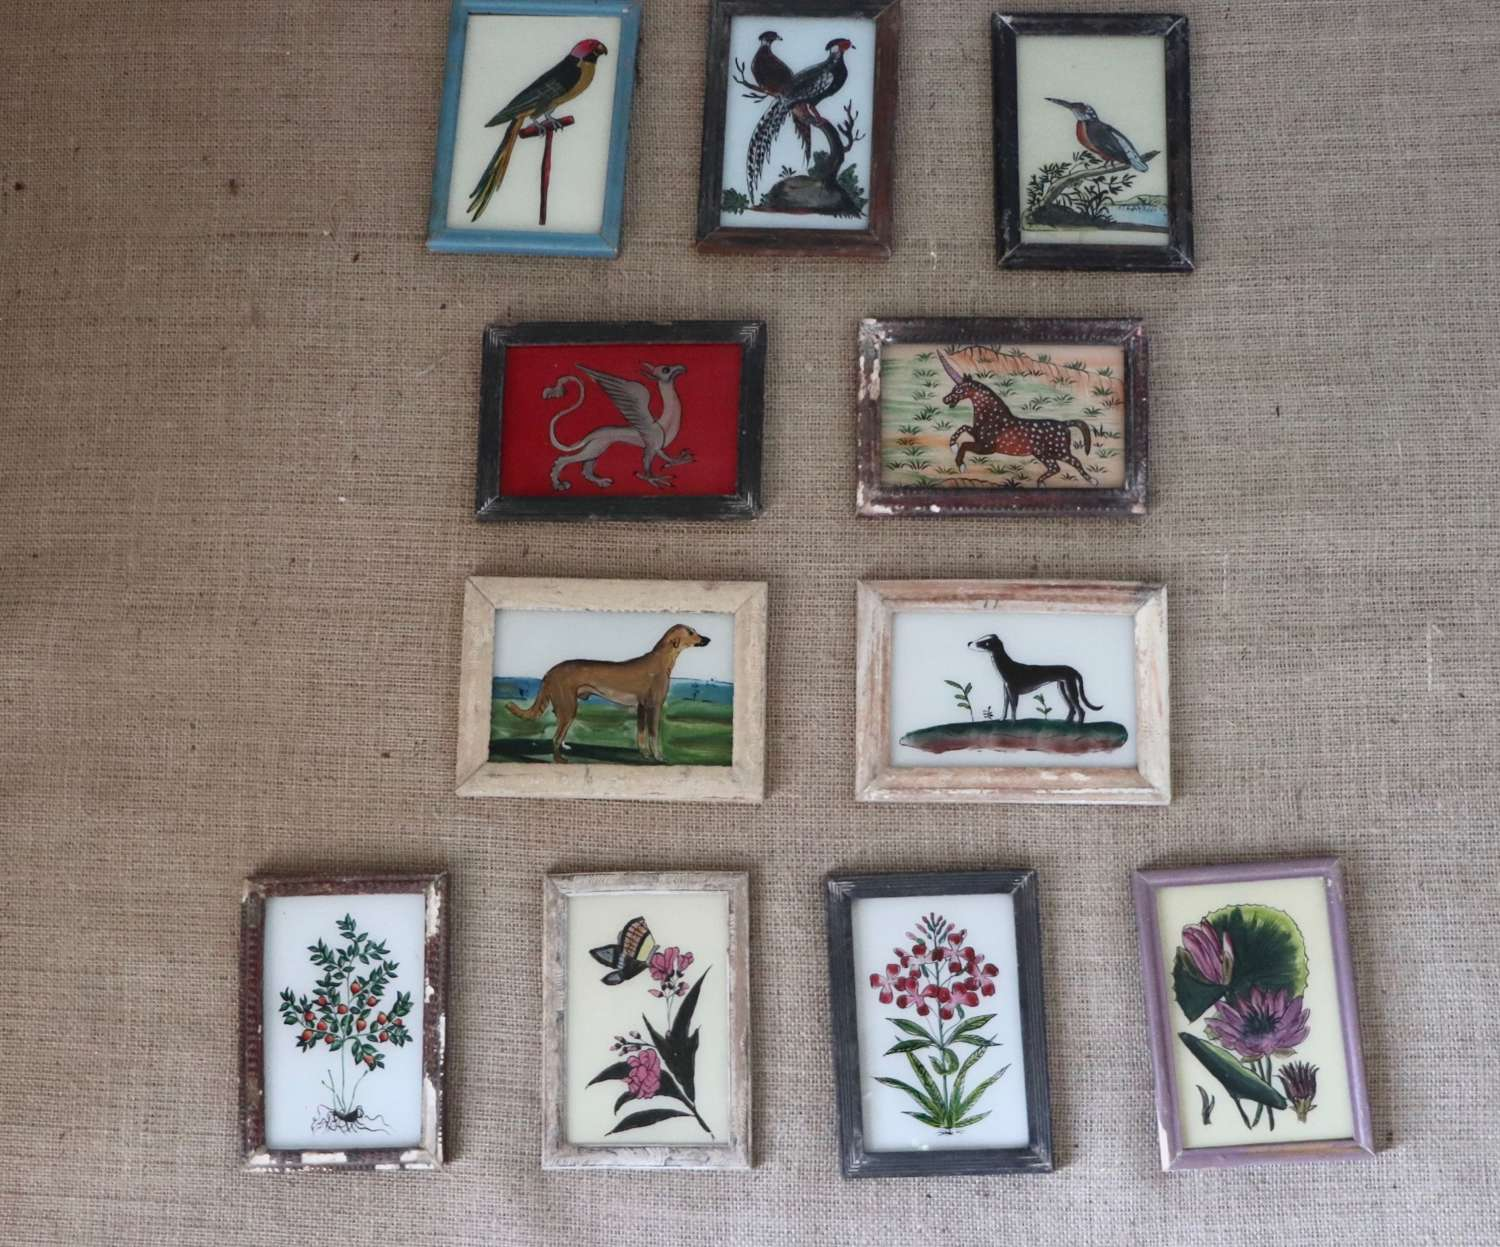 Indian reverse glass paintings in old frames